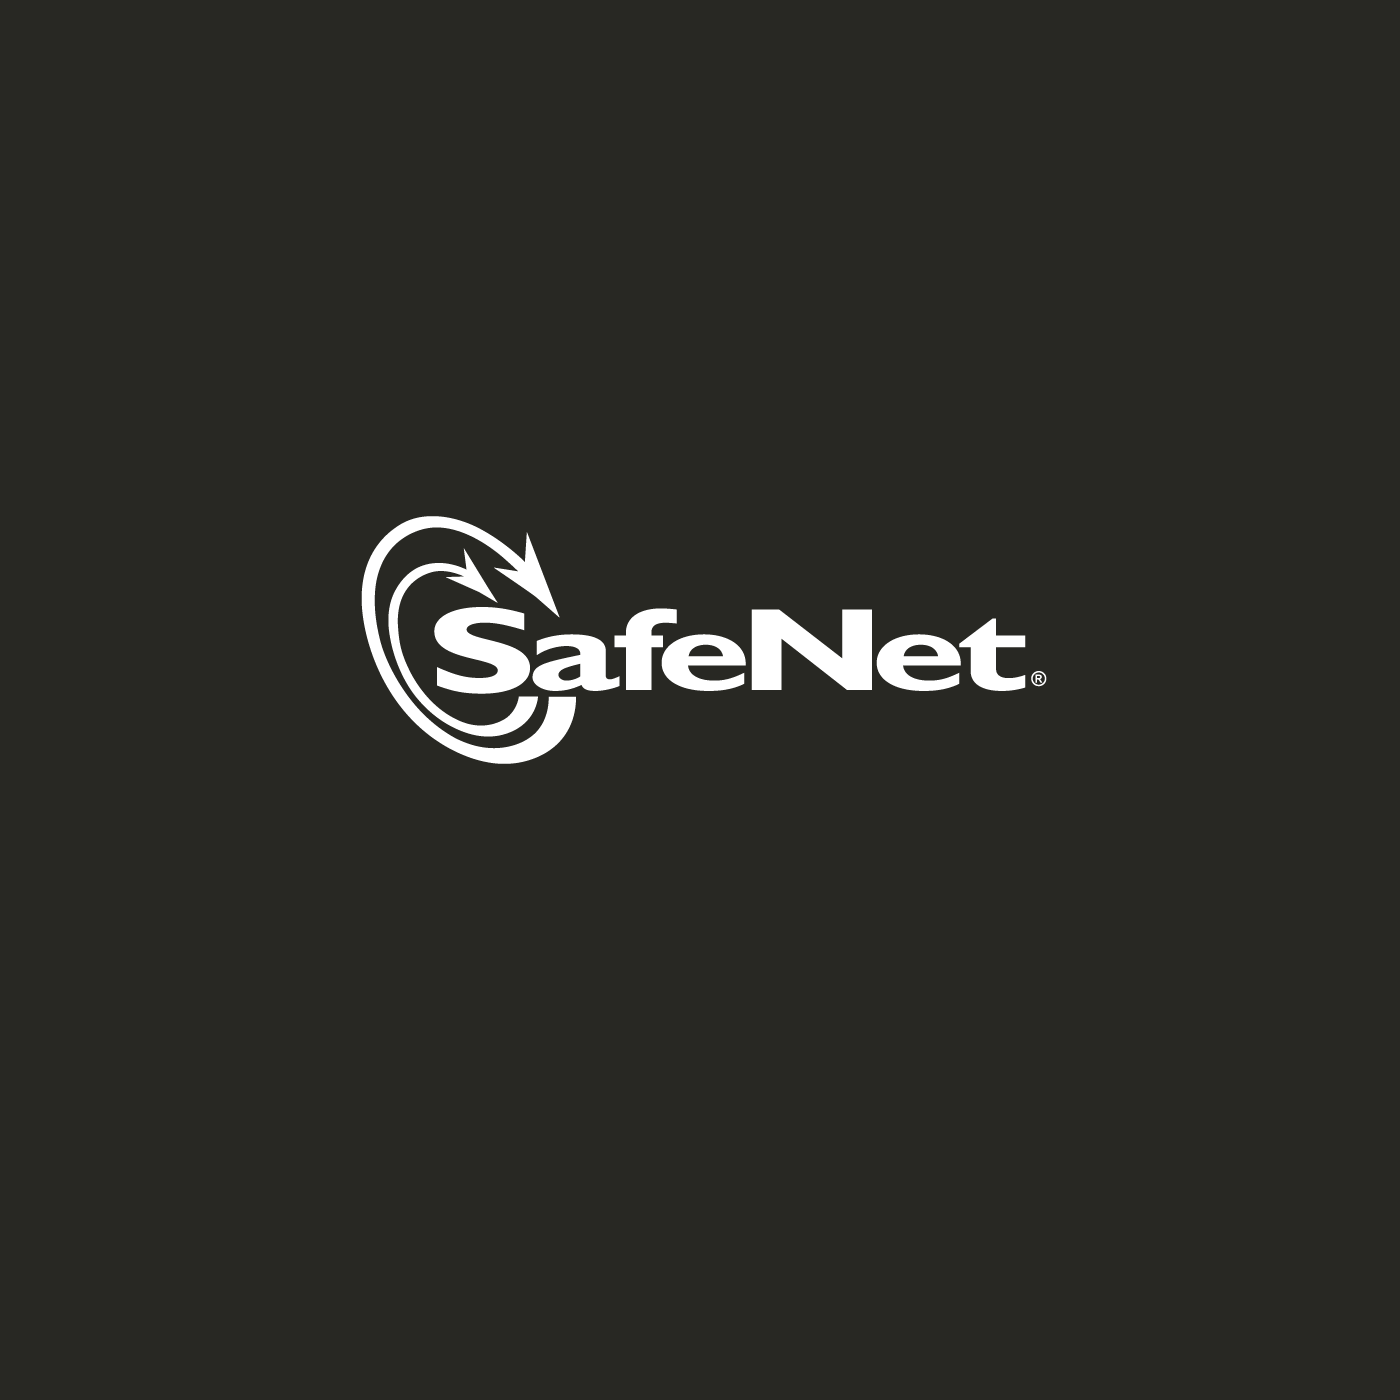 SafeNet Brand Refresh and Website Design